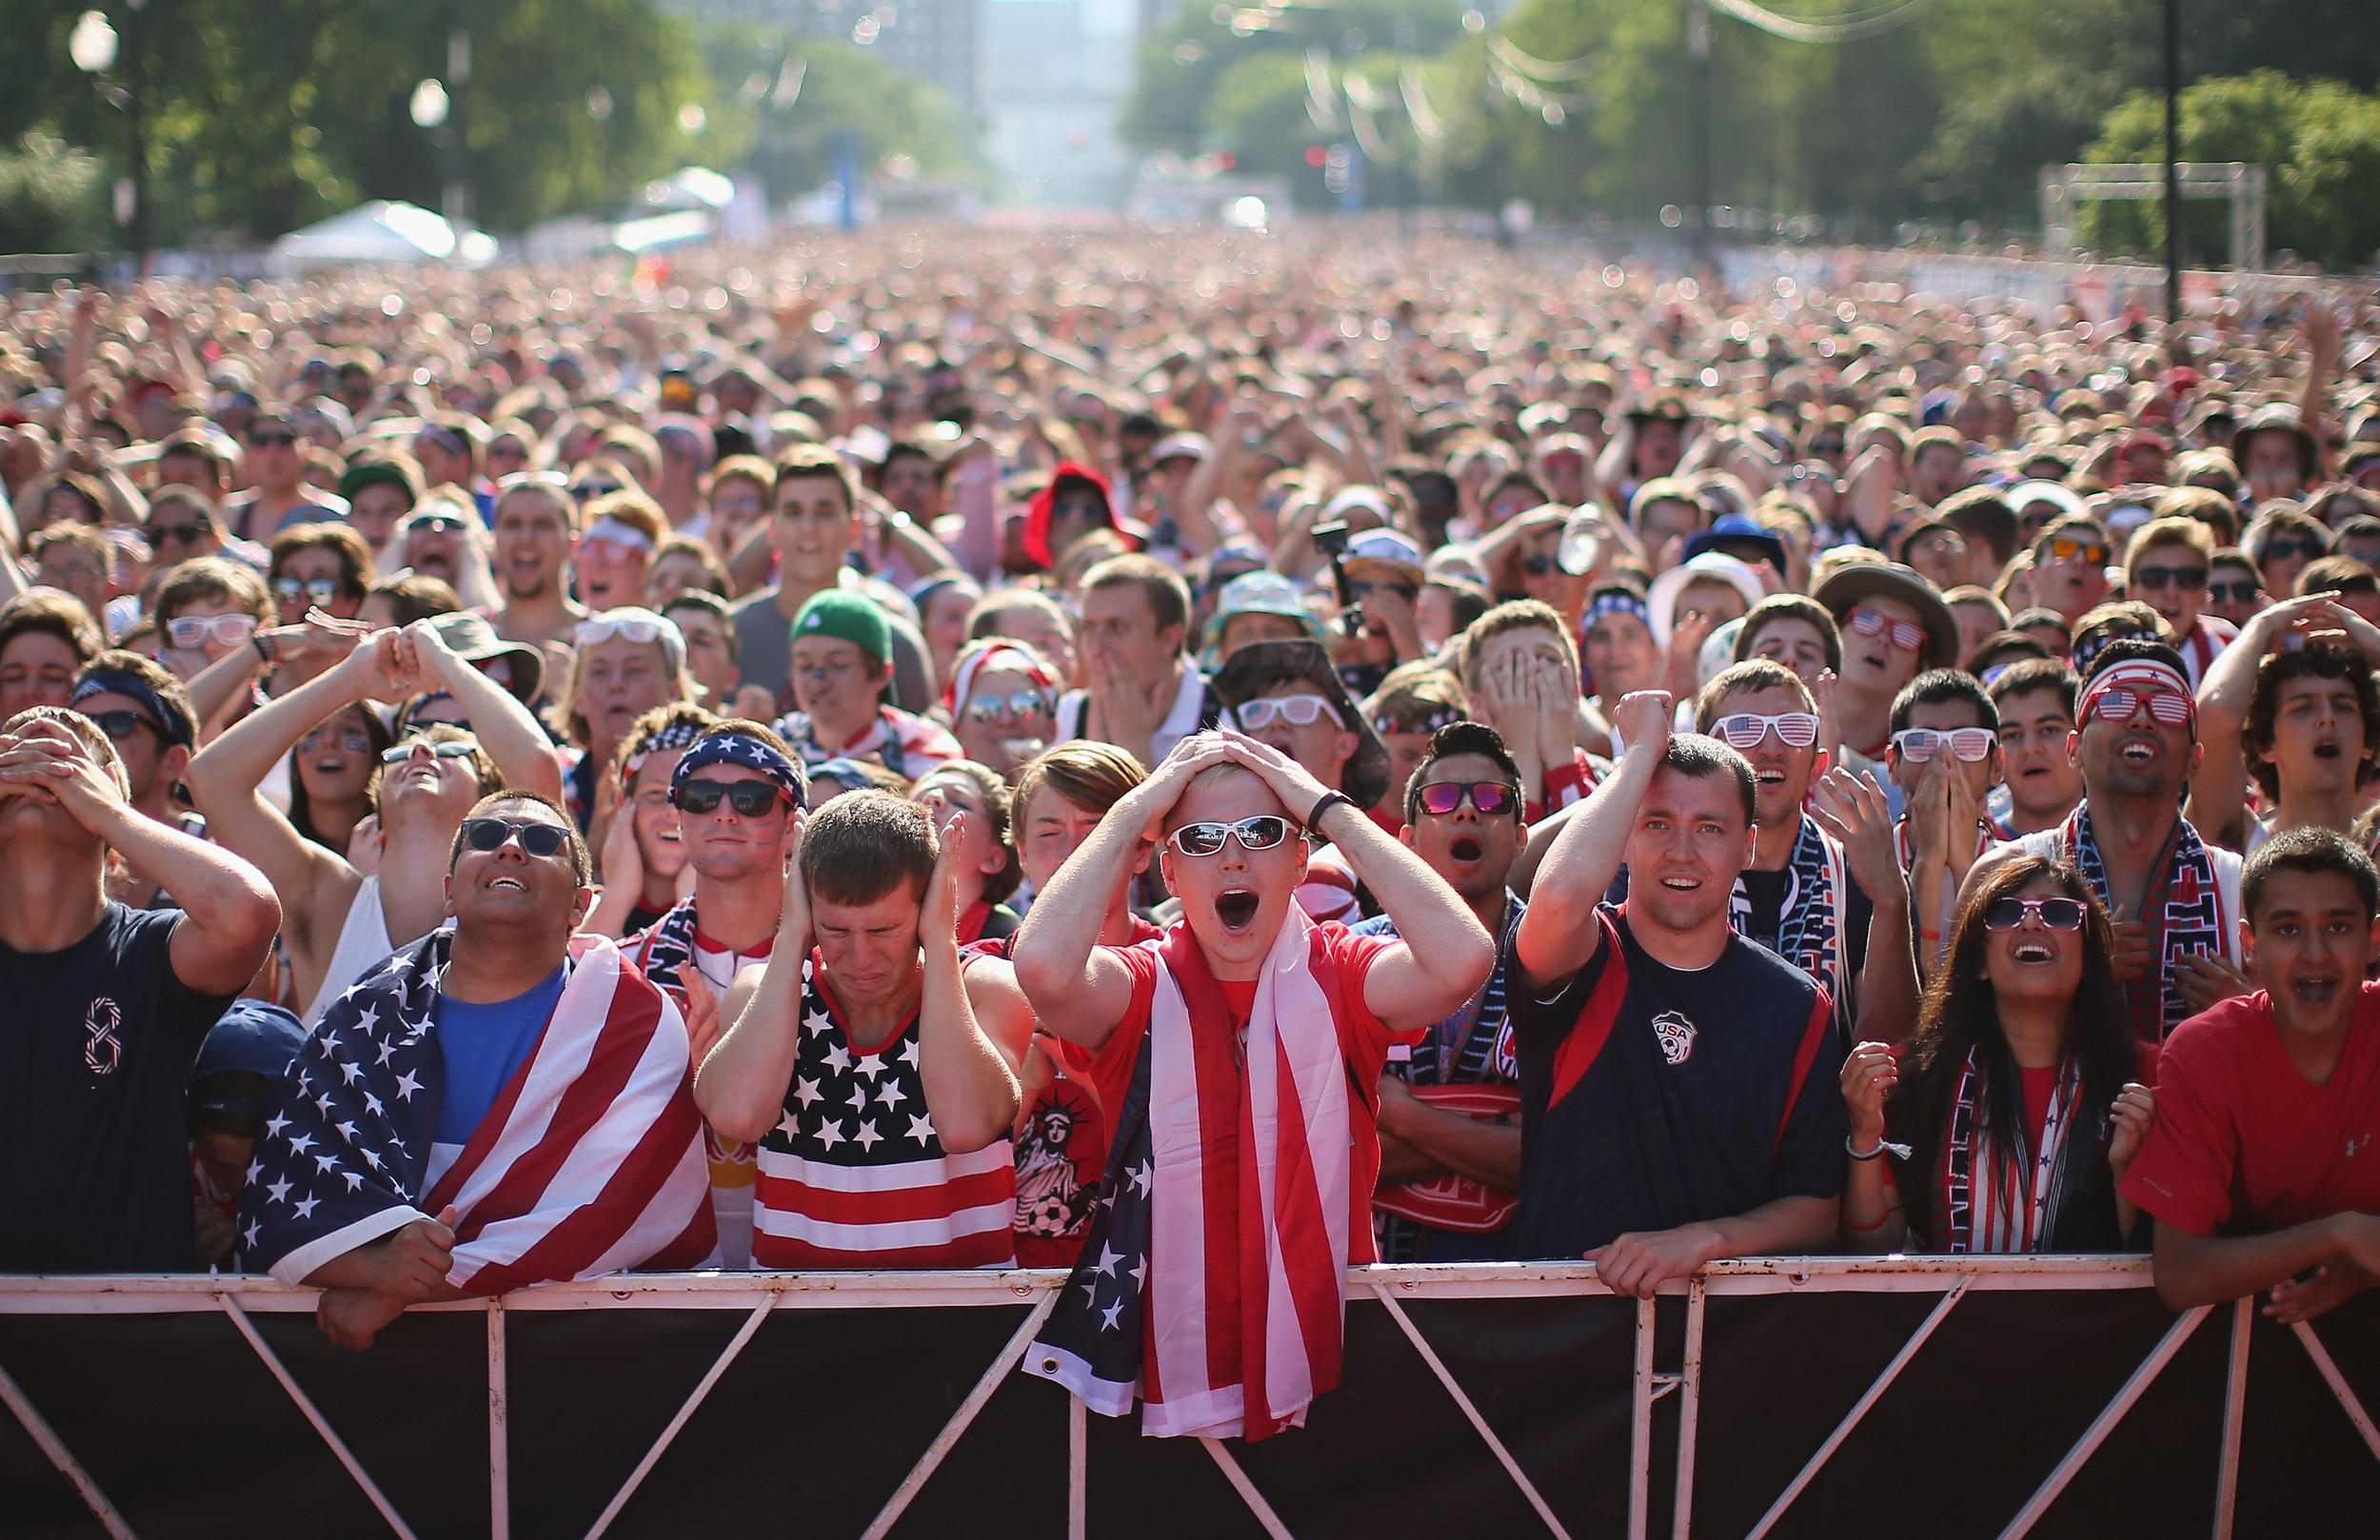 Image: ***BESTPIX*** Soccer Fans Gather To Watch U.S. Play Portugal In World Cup Match